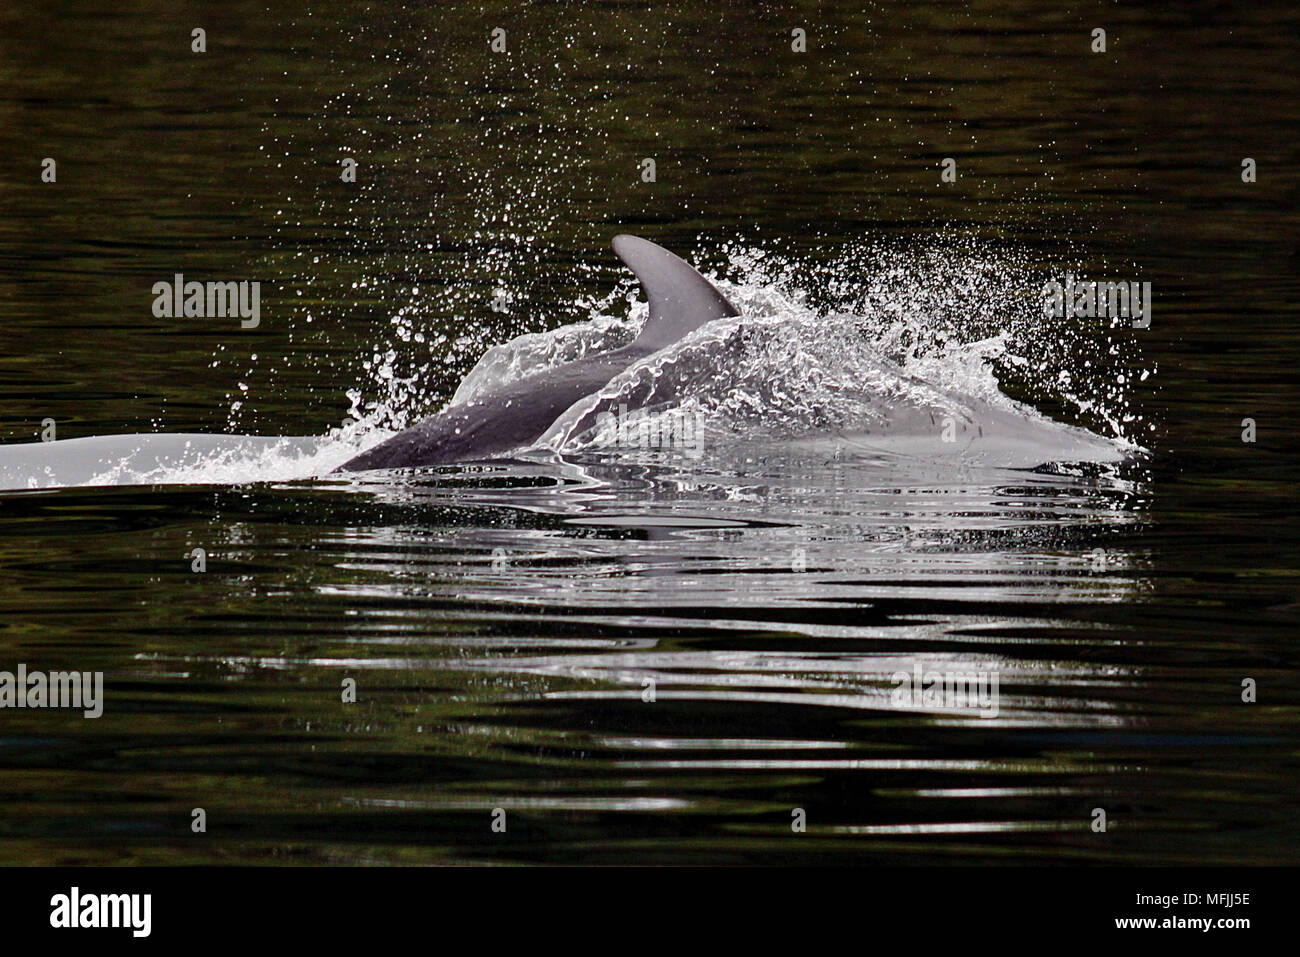 Pacific White-sided Dolphin surfacing off the coast of Northern Vancouver Island on the West Coast of British Columbia, Canada. - Stock Image